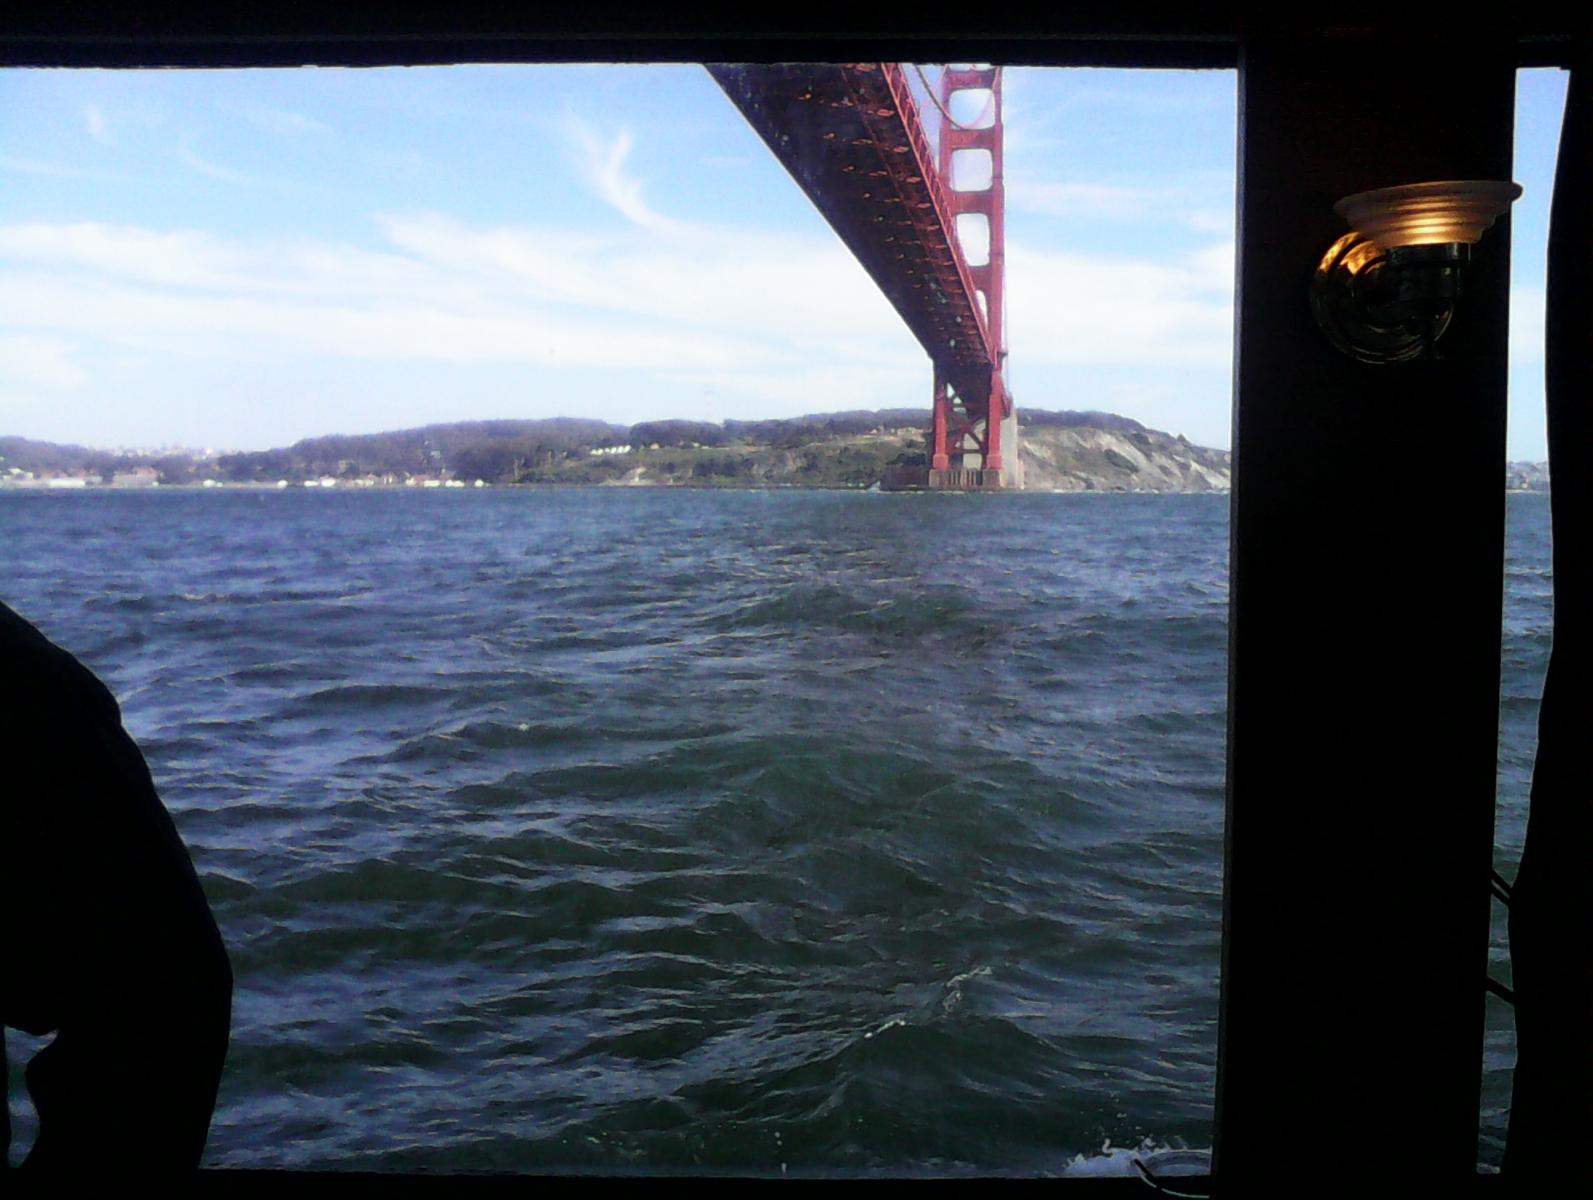 Golden Gate from the boat